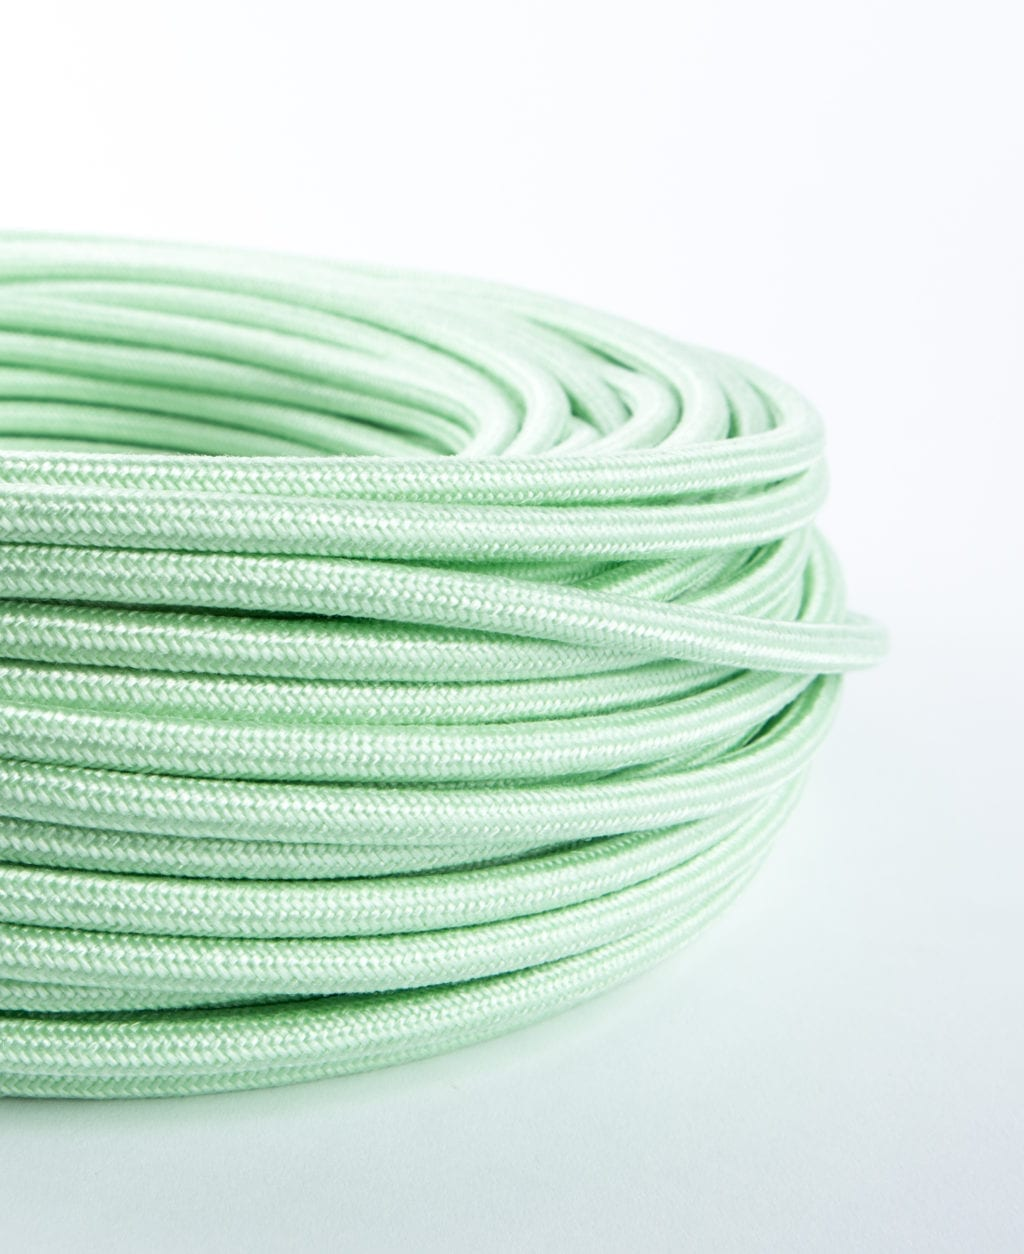 close up of mint green fabric cable coil on white background